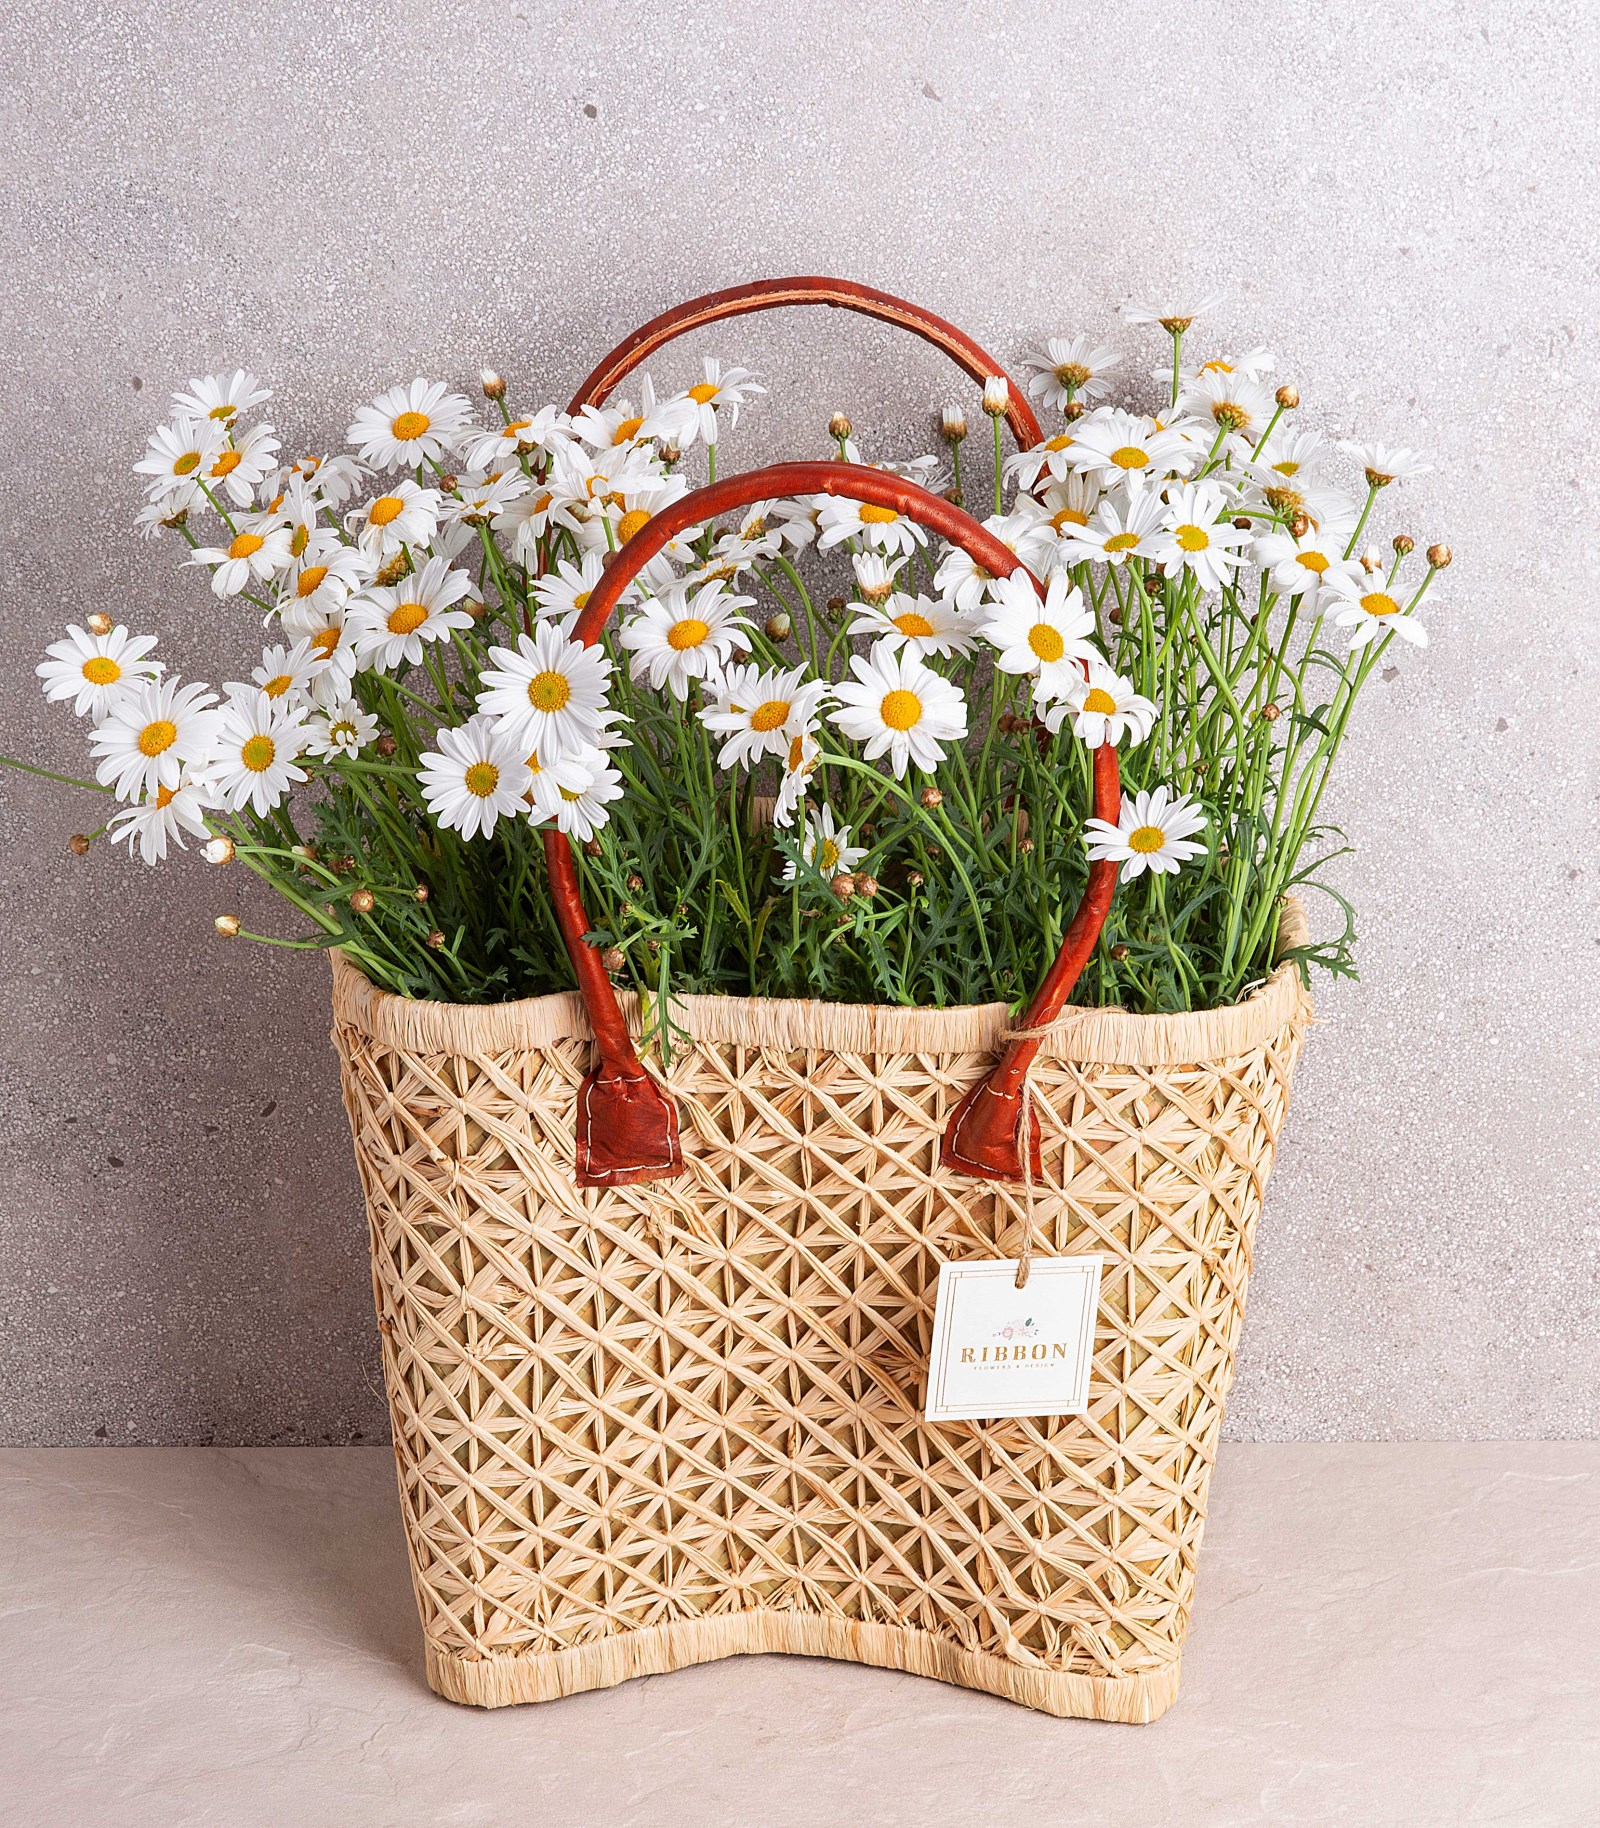 Daisy in basket